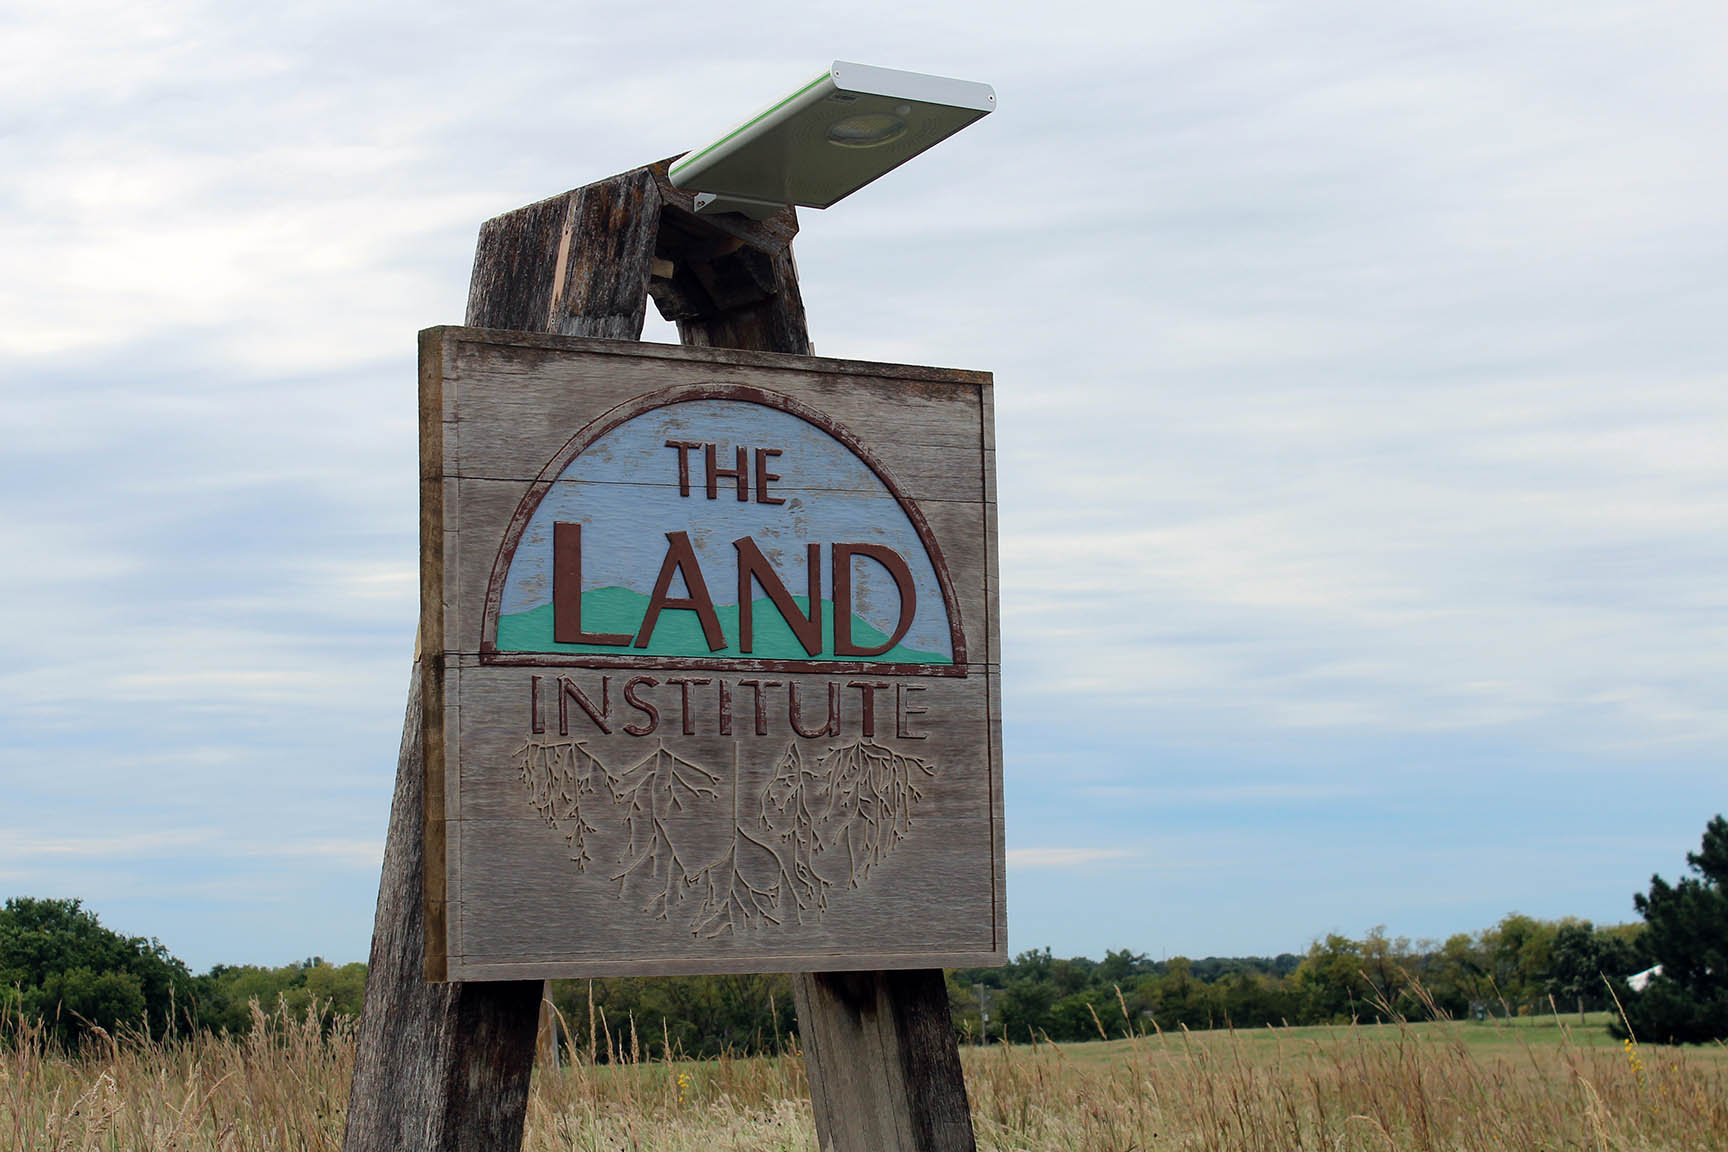 the land institute sign